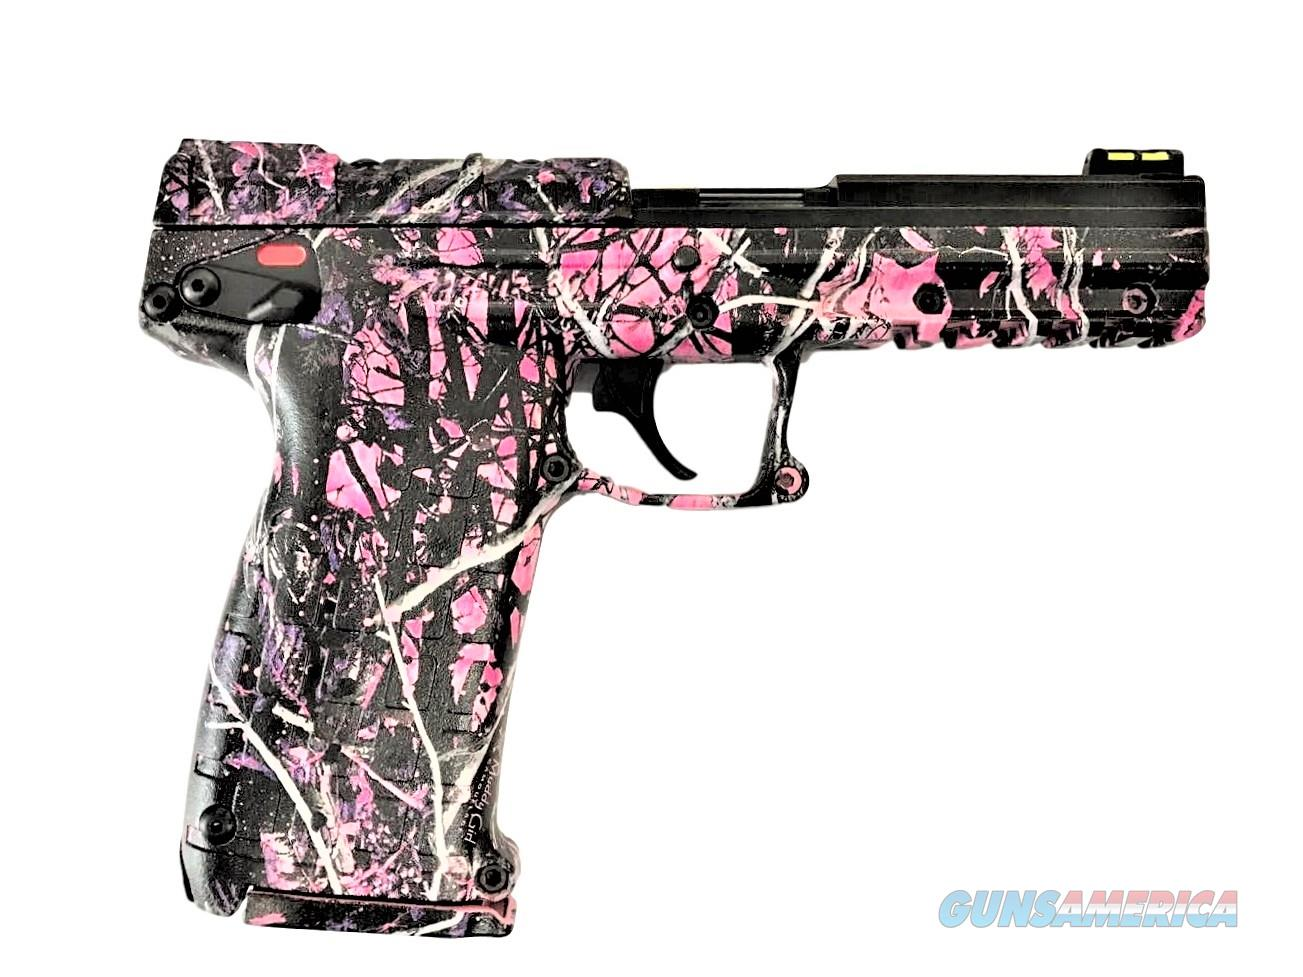 Kel Tec PMR-30, Custom MUDDY GIRL EXCLUSIVE! Free Shipping. NO CC FEES!!! Also available in Black and OD Green for less!  Guns > Pistols > Kel-Tec Pistols > Pocket Pistol Type